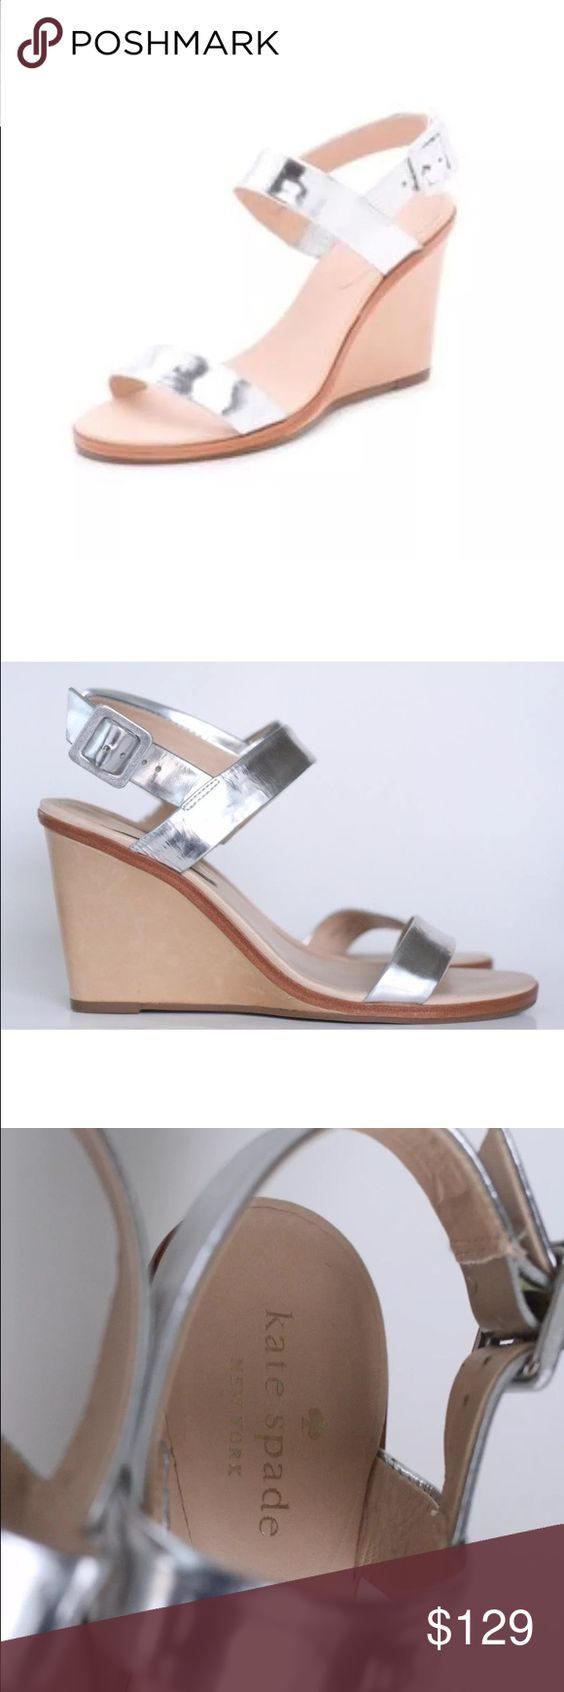 Kate Spade NY Nice Silver Wedge Sandals 8 Metallic straps offer a slick contrast to matte leather trim on Kate Spade New York sandals. Tonal buckle closure. Covered wedge heel. Rubber sole.  Leather: Goatskin. Made in Brazil.  Size 8M kate spade Shoes Sandals